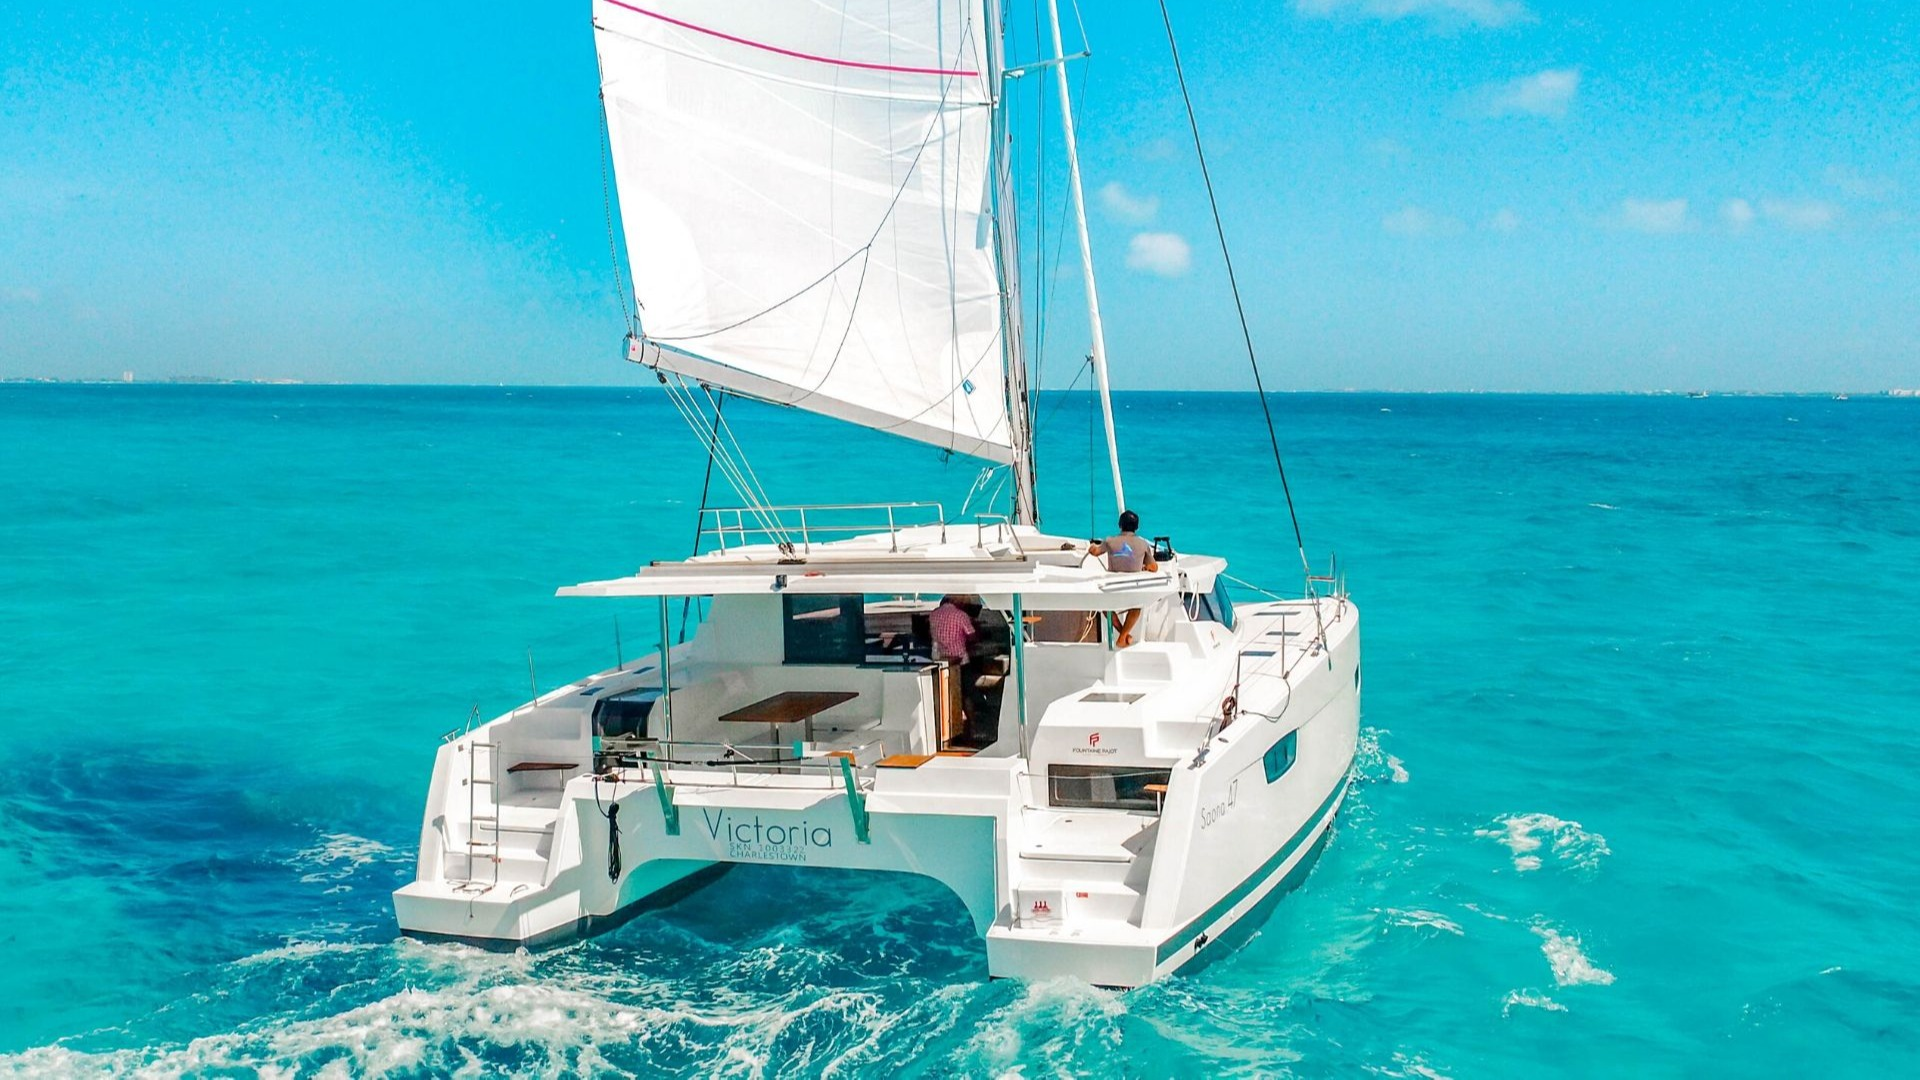 2 - LowRes - Private Isla Mujeres tour in catamaran - Victoria - Cancun Sailing